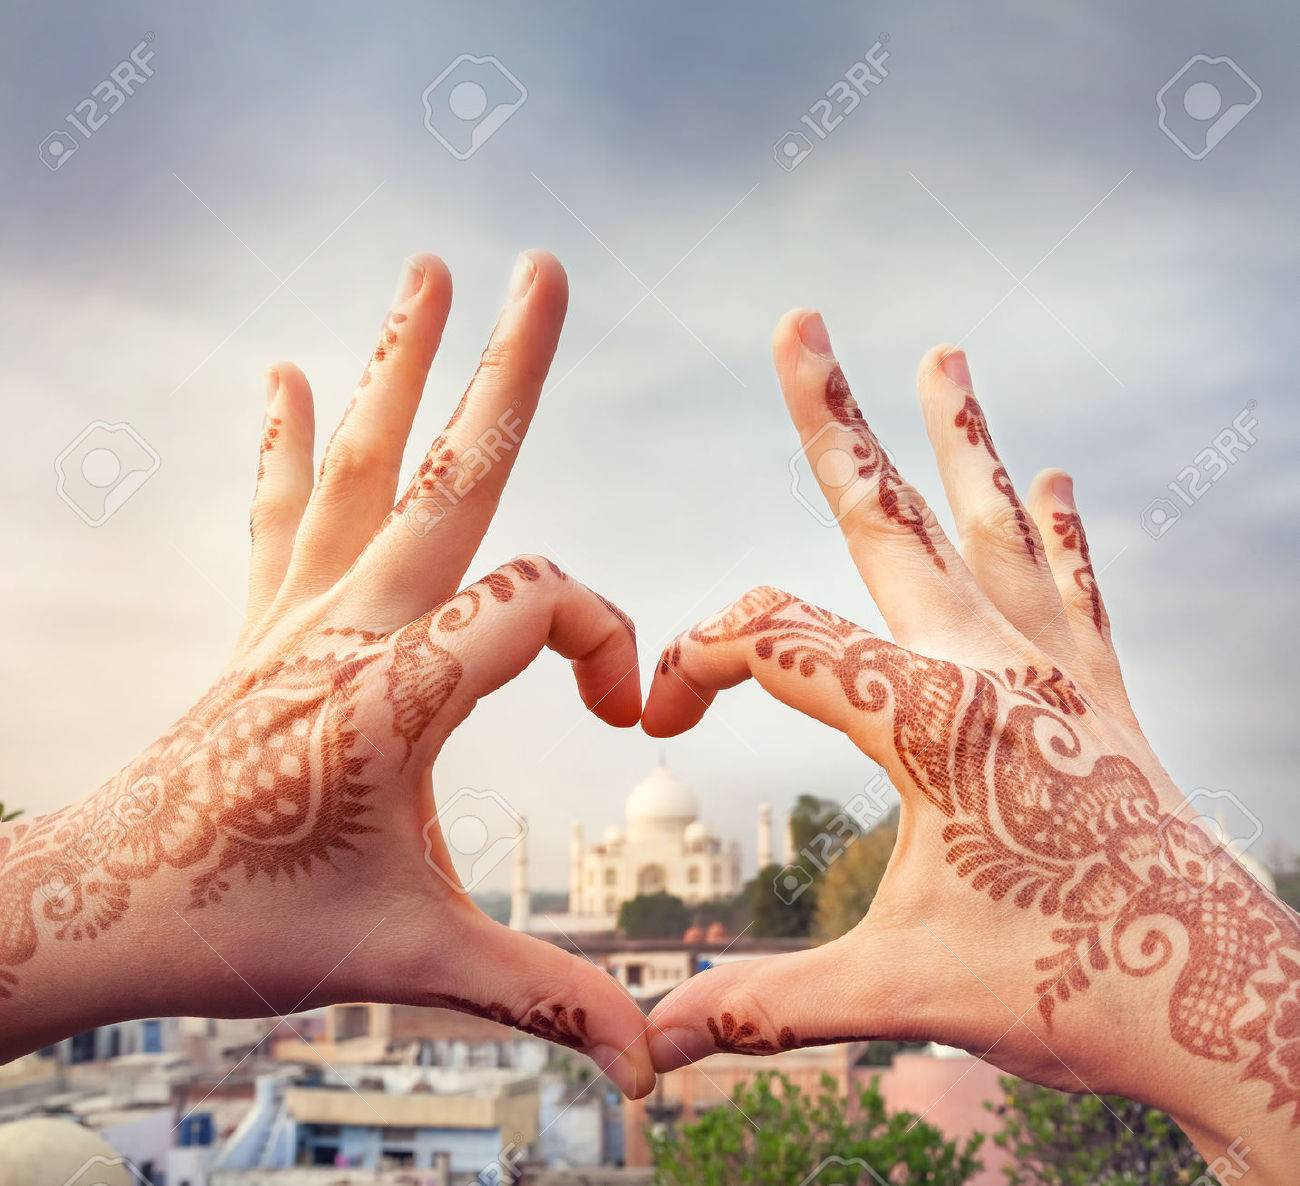 Woman hands with henna painting in shape of heart with Taj Mahal in it. I love India concept with copy space. Stock Photo - 50656341